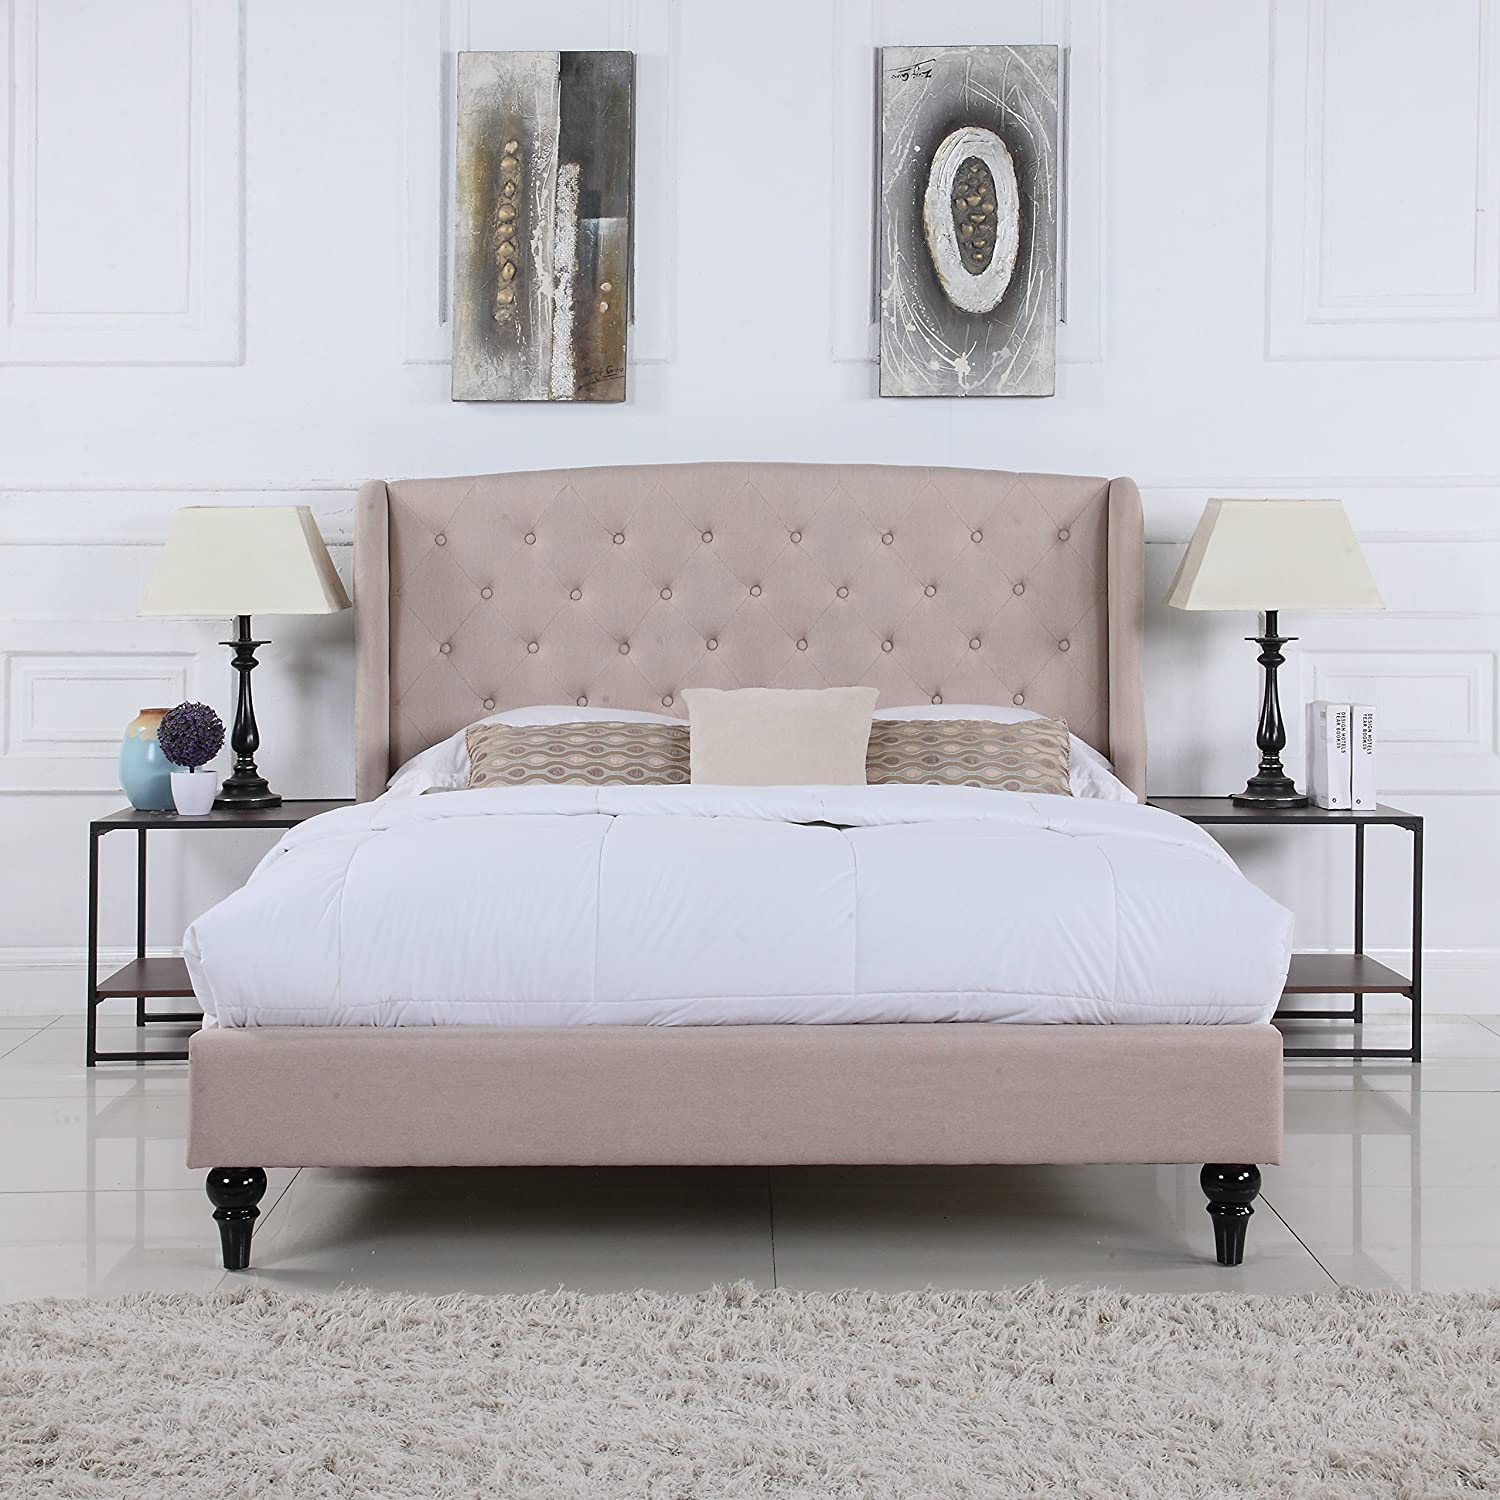 Classic Tufted Bed Frame Painting